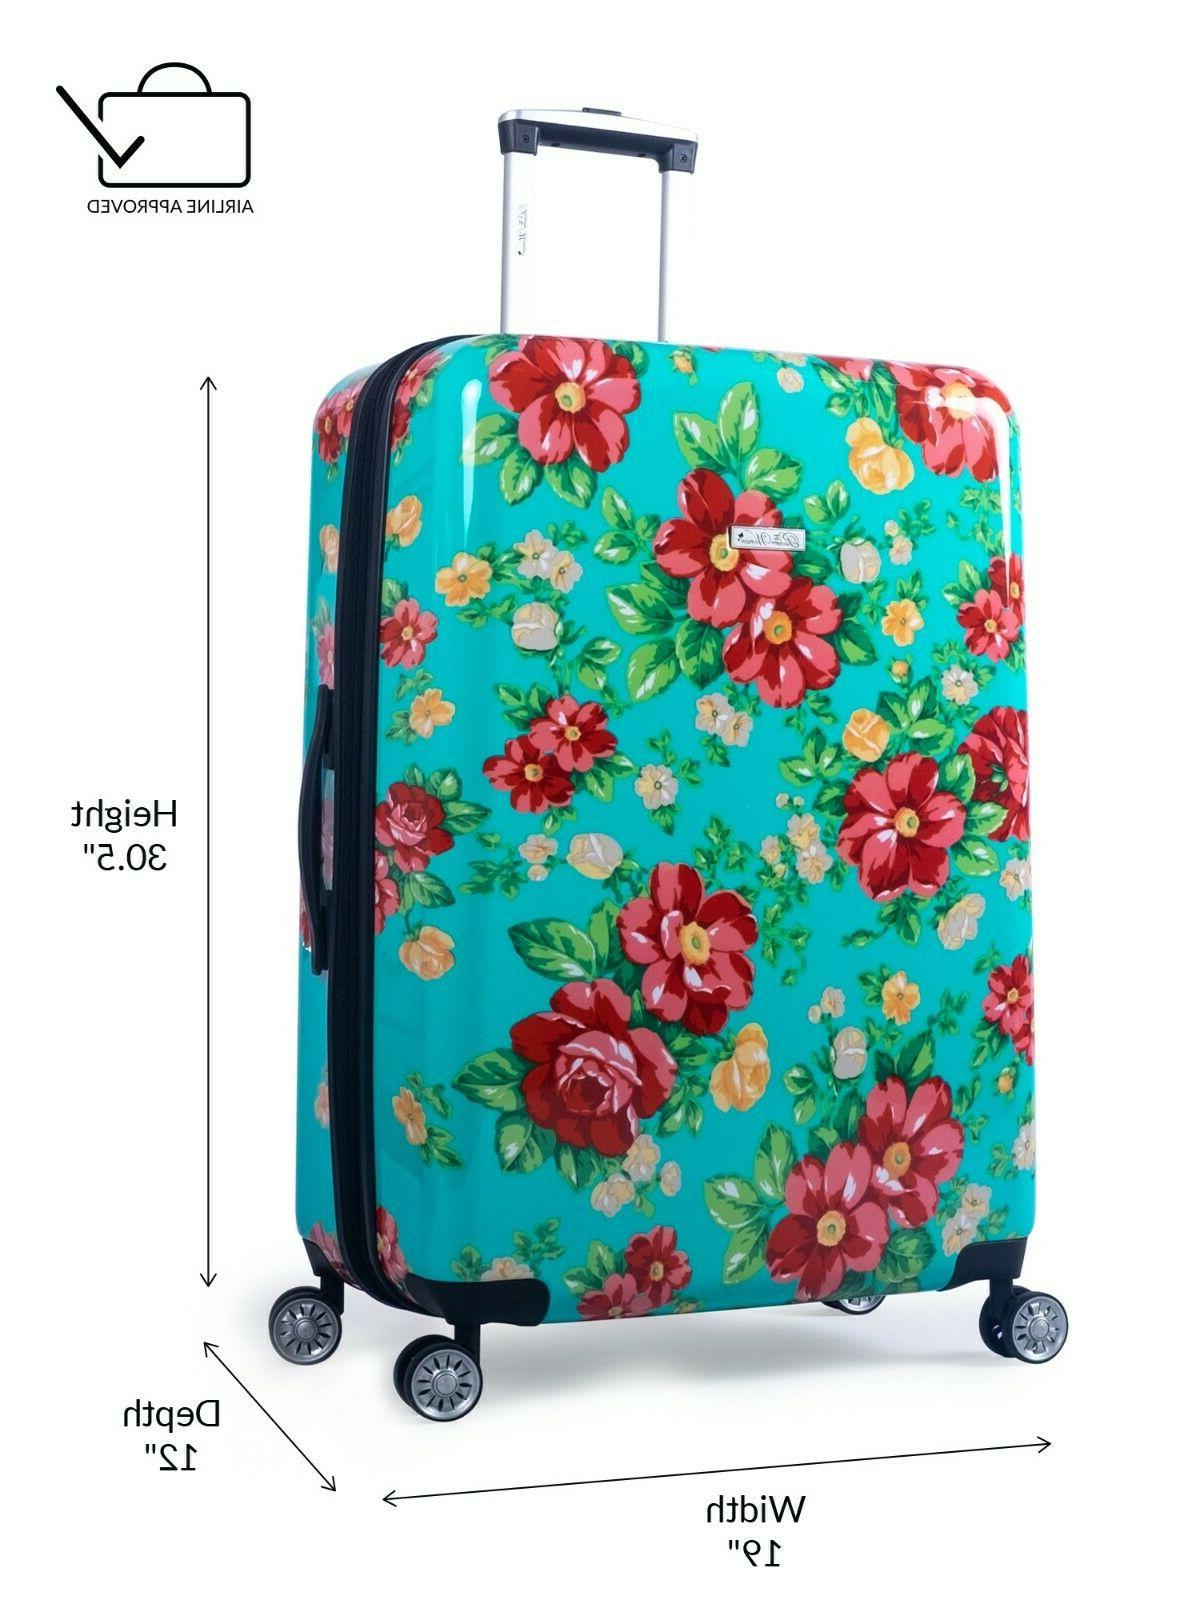 The Hardside Luggage Carry-On